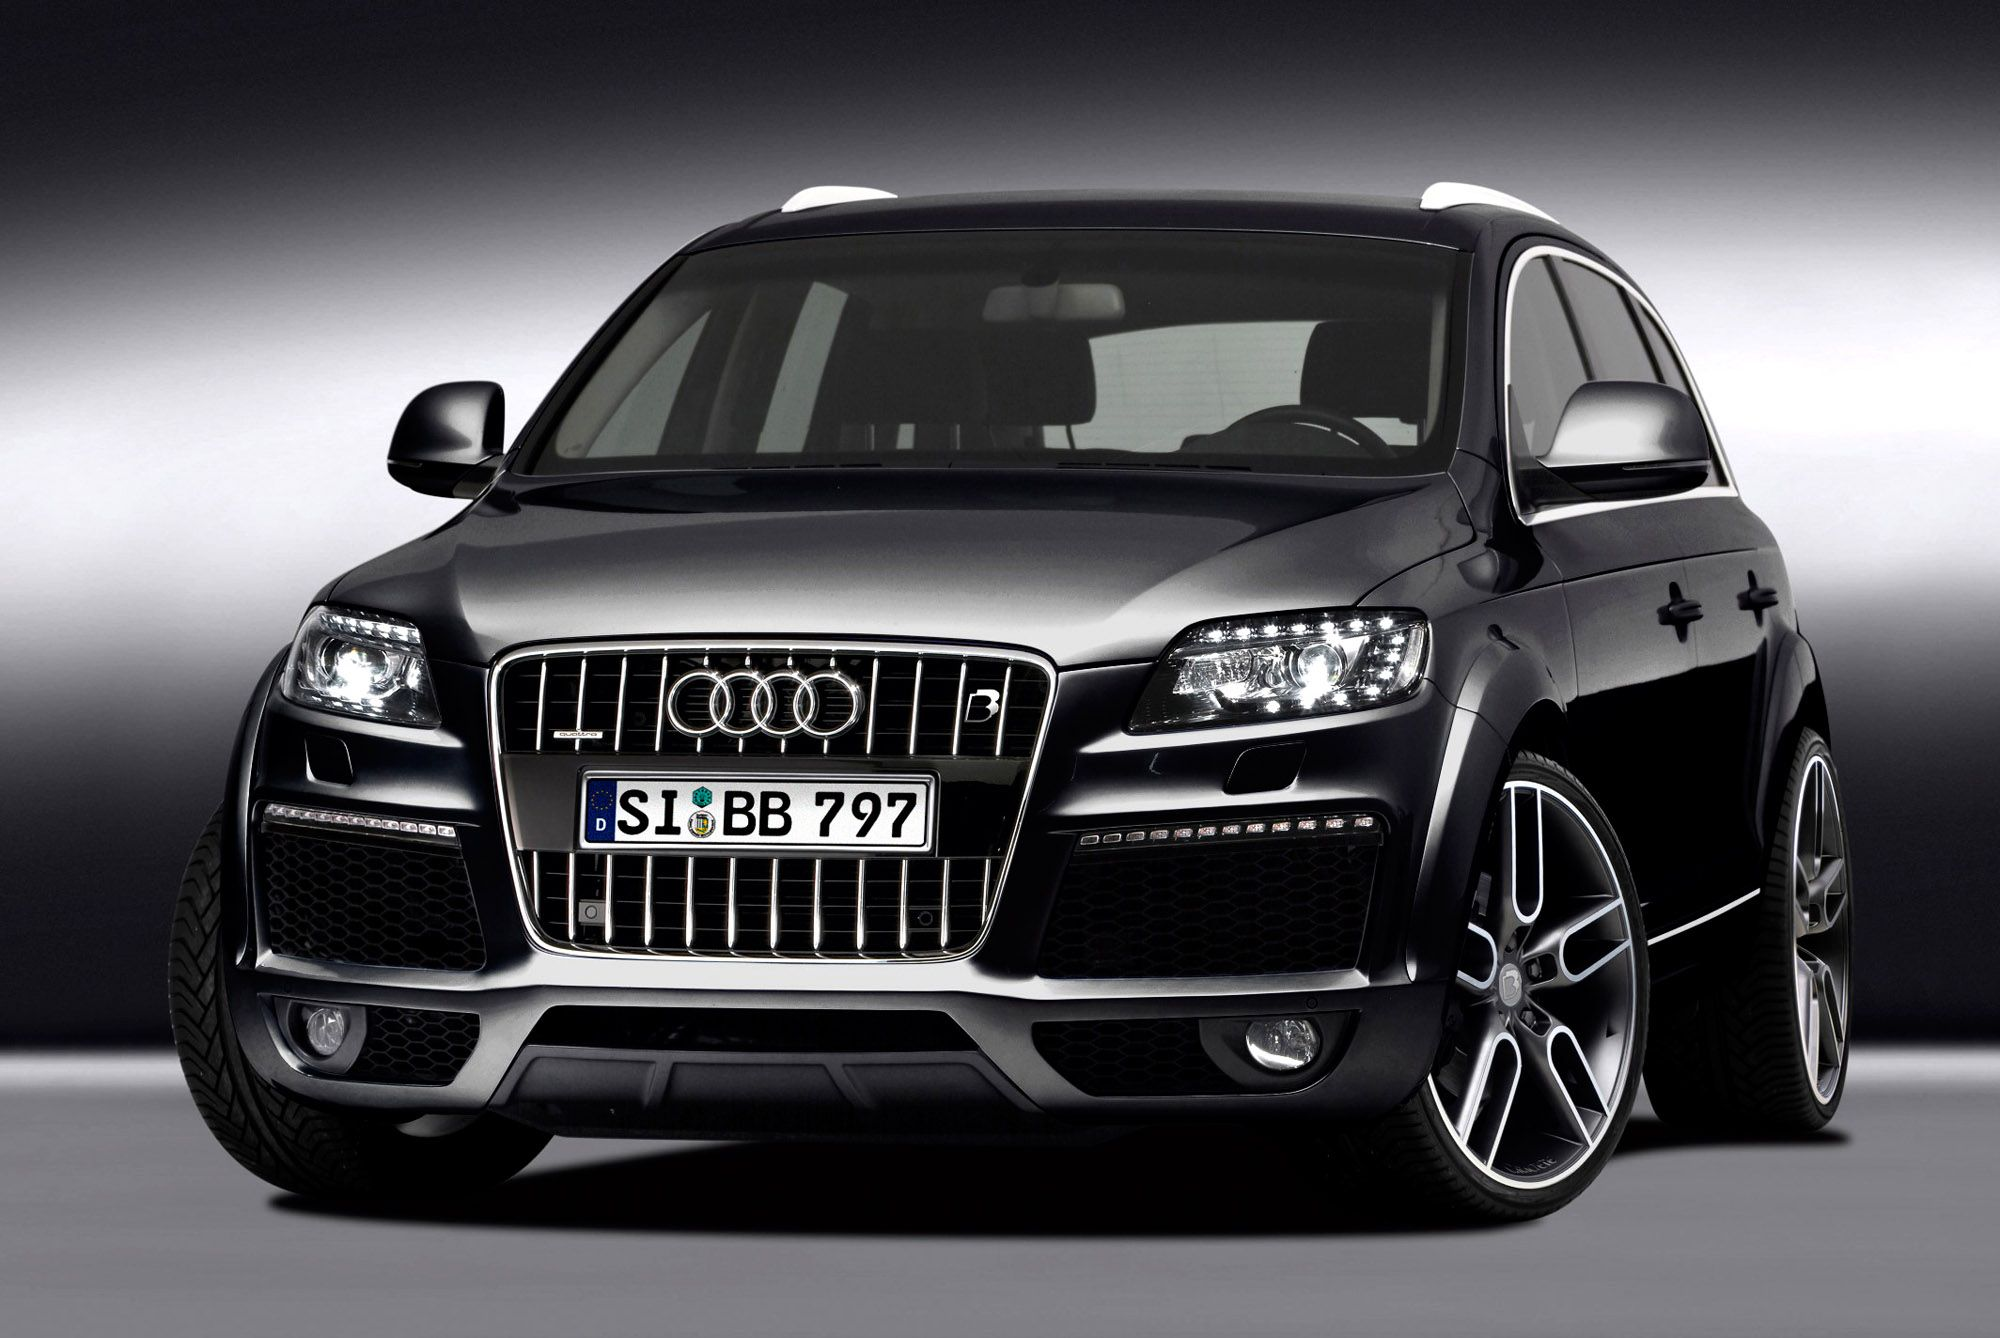 Really Nice Audi Q7 Now That Is An Suv Audi Q7 Audi Q7 Tdi